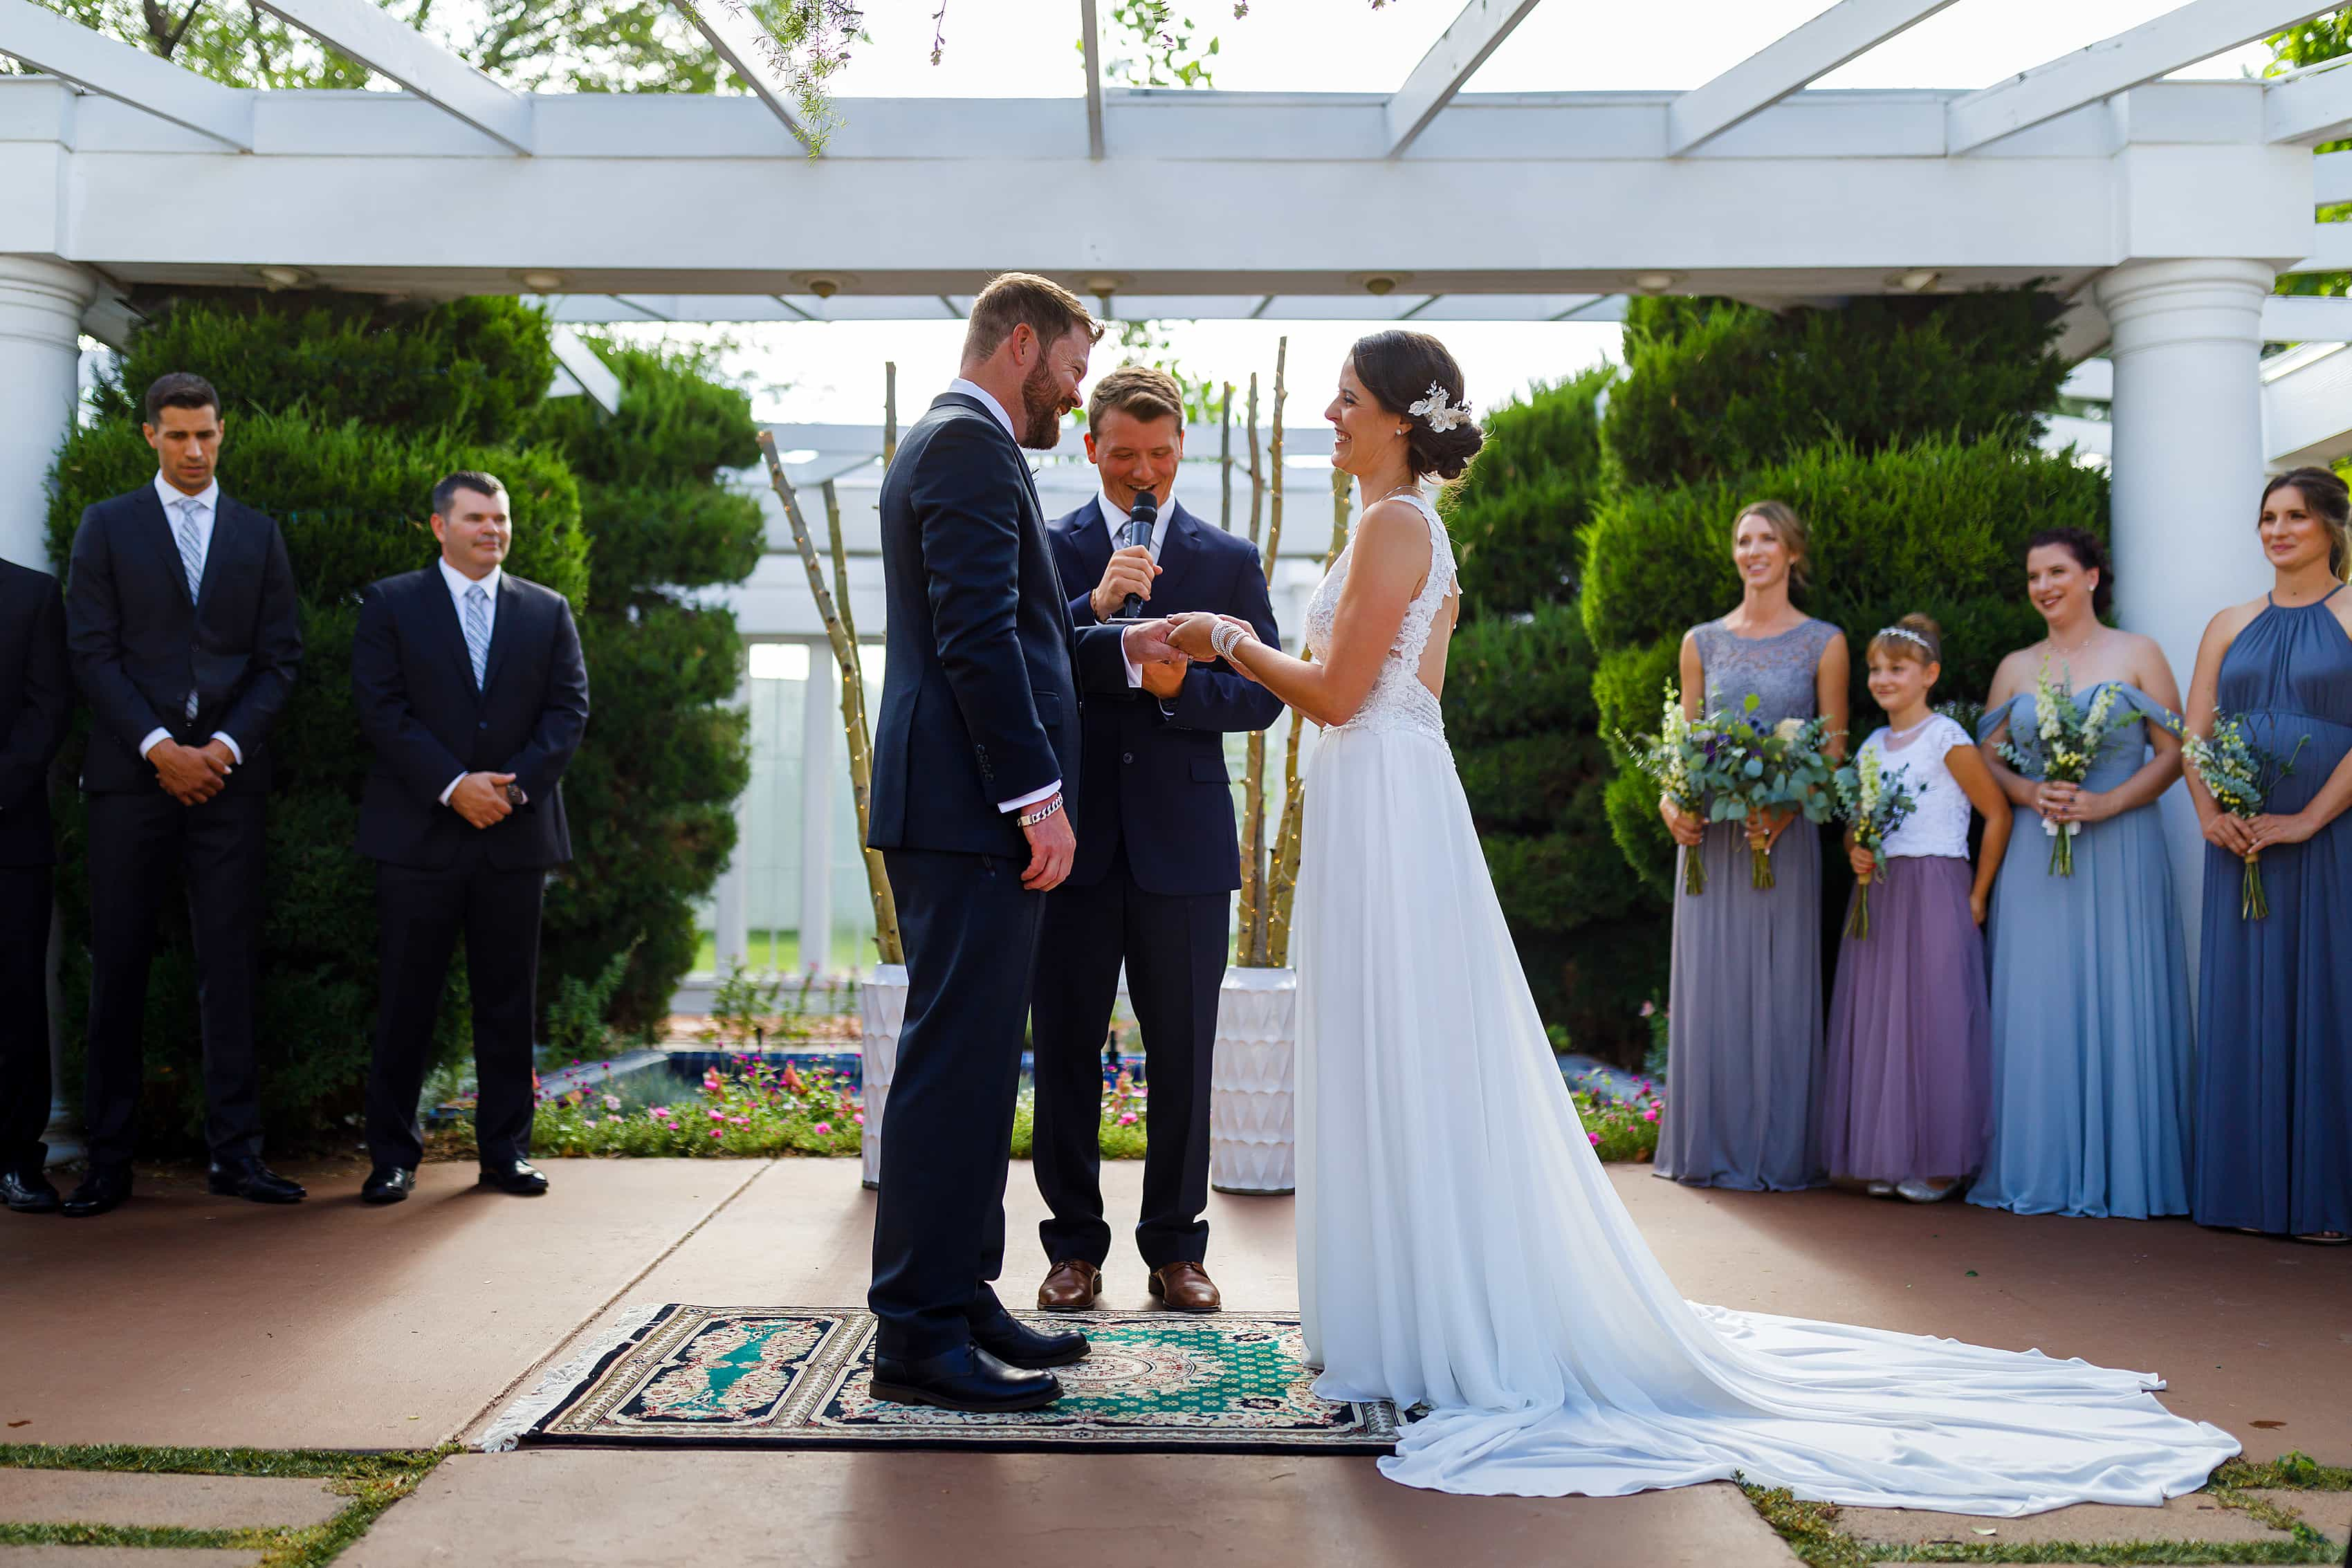 bride and groom exchange rings during outdoor wedding ceremony at Lionsgate Event Center